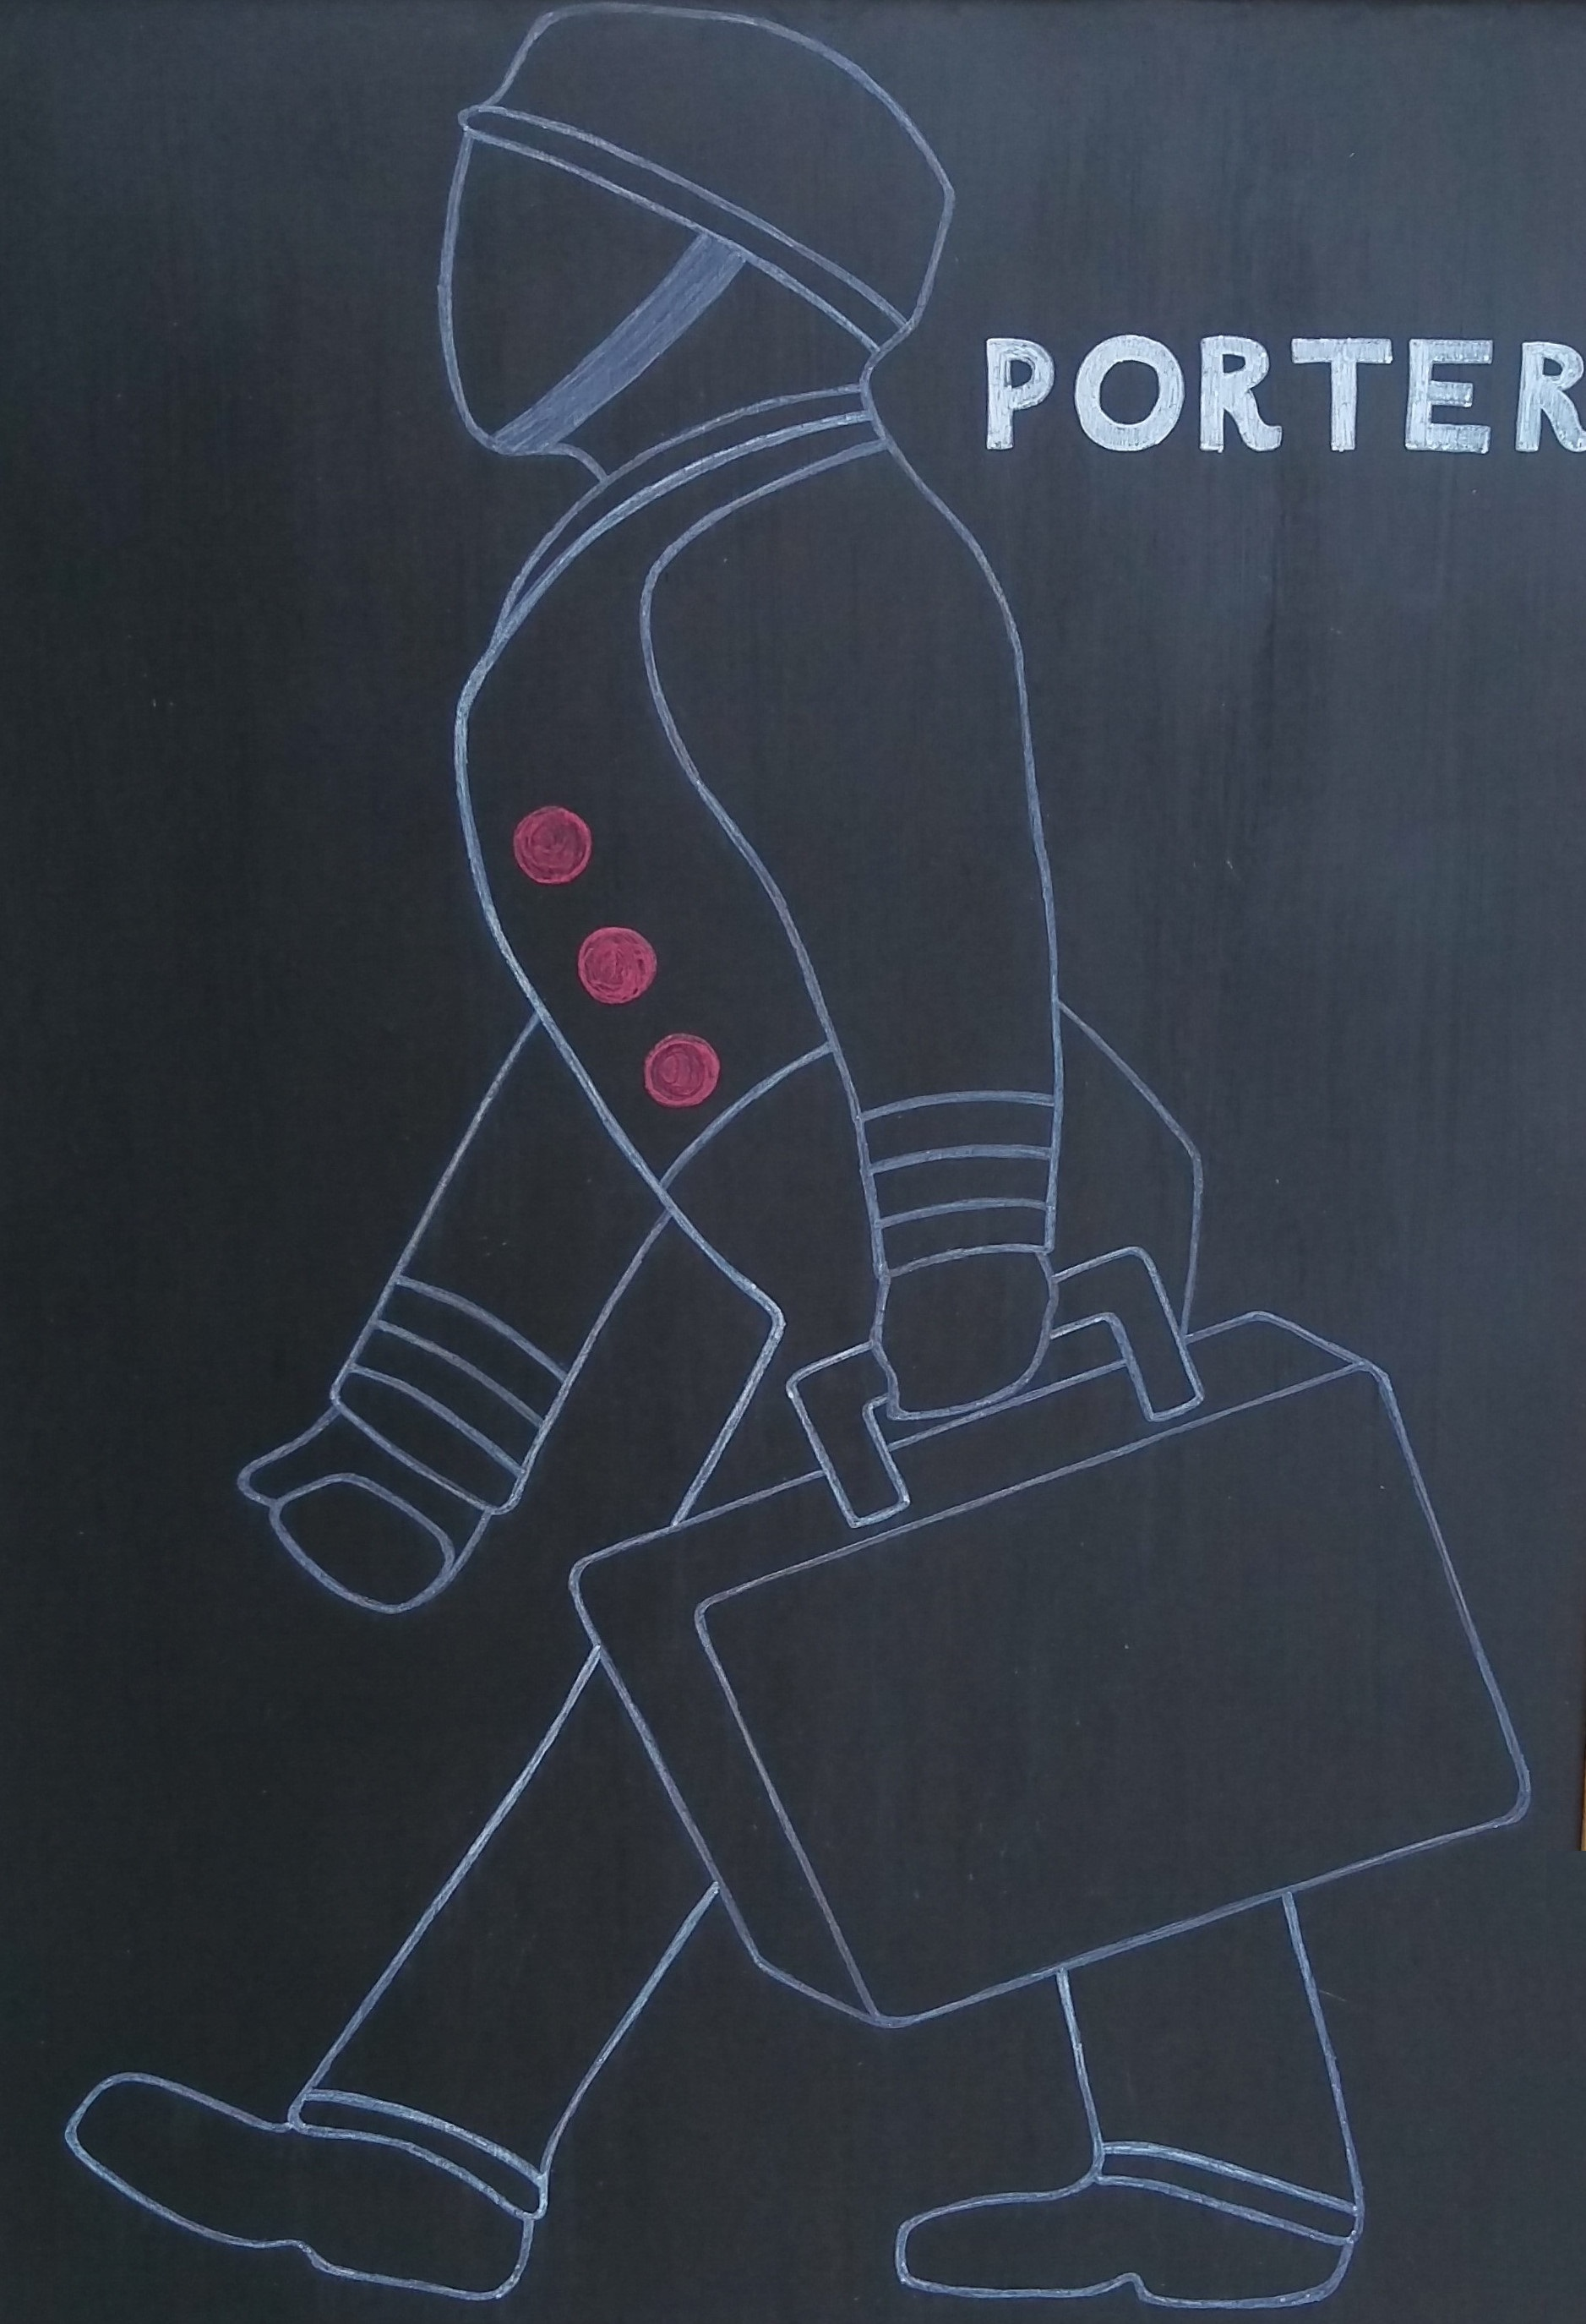 A chalk outline of an old fashioned porter, case in hand, from the sign of Porter, in Madison.